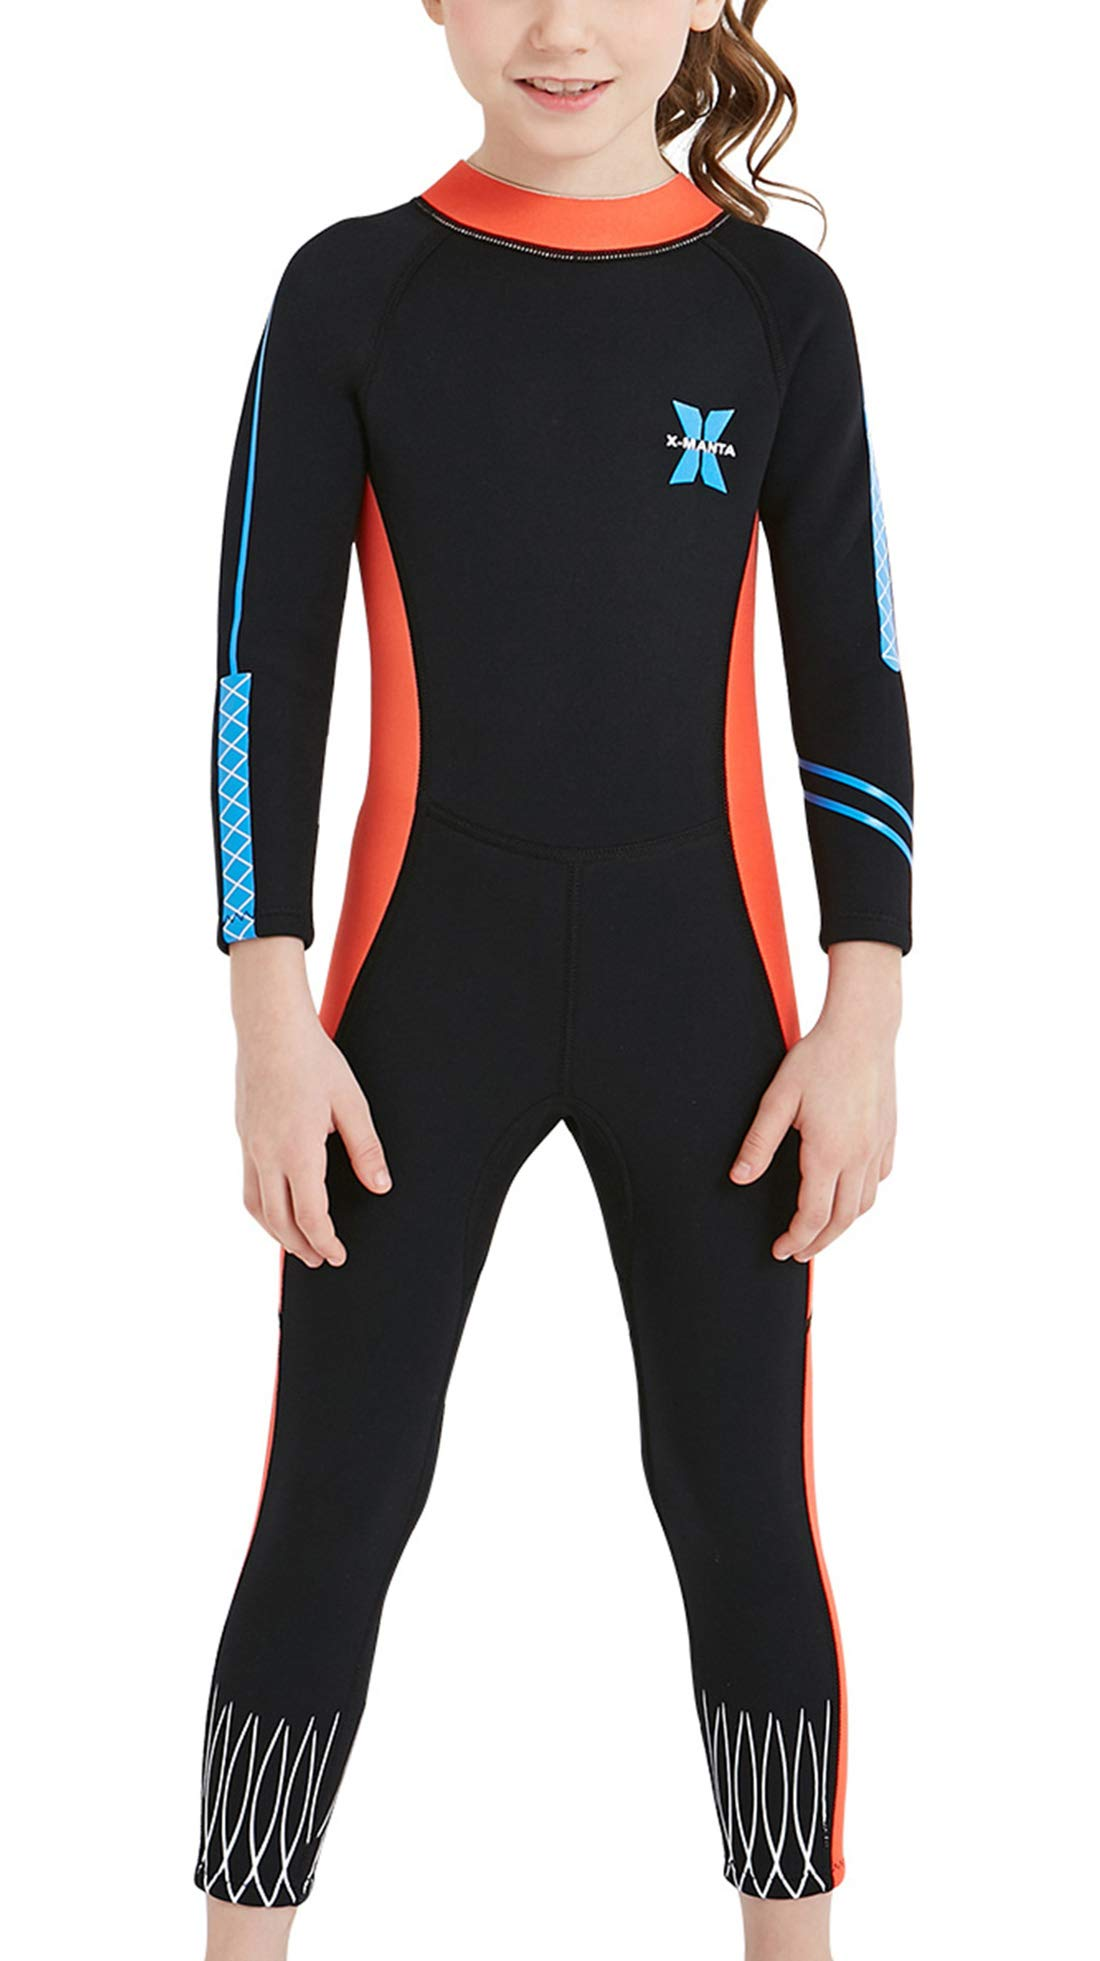 DIVE & SAIL Girls Warm Wetsuit One Piece Long Sleeve Full Wetsuit Thermal Swimsuits UPF 50+ Sun Protection Swimwear Black M